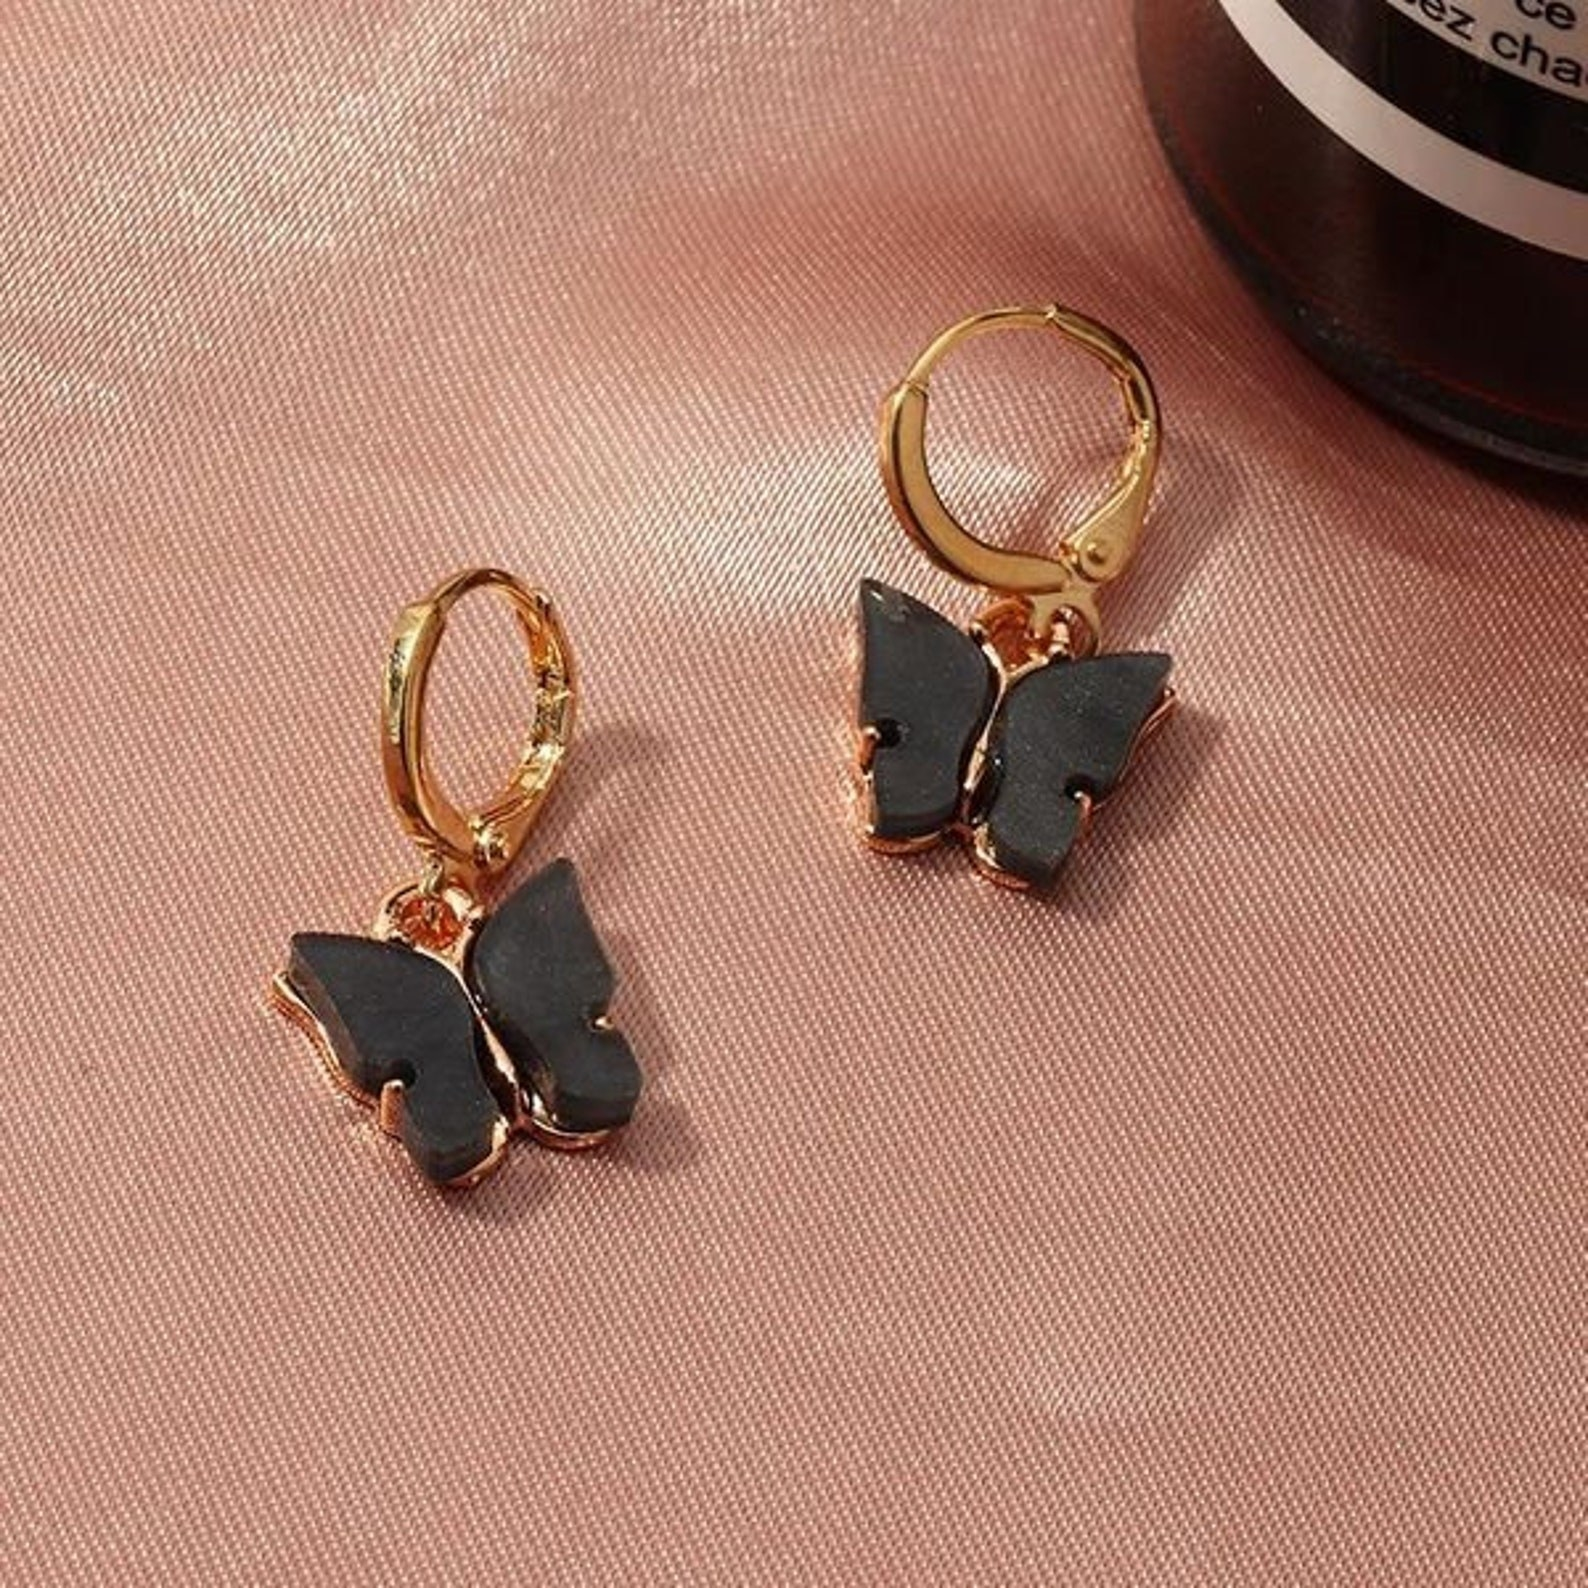 Pair of black butterfly earrings